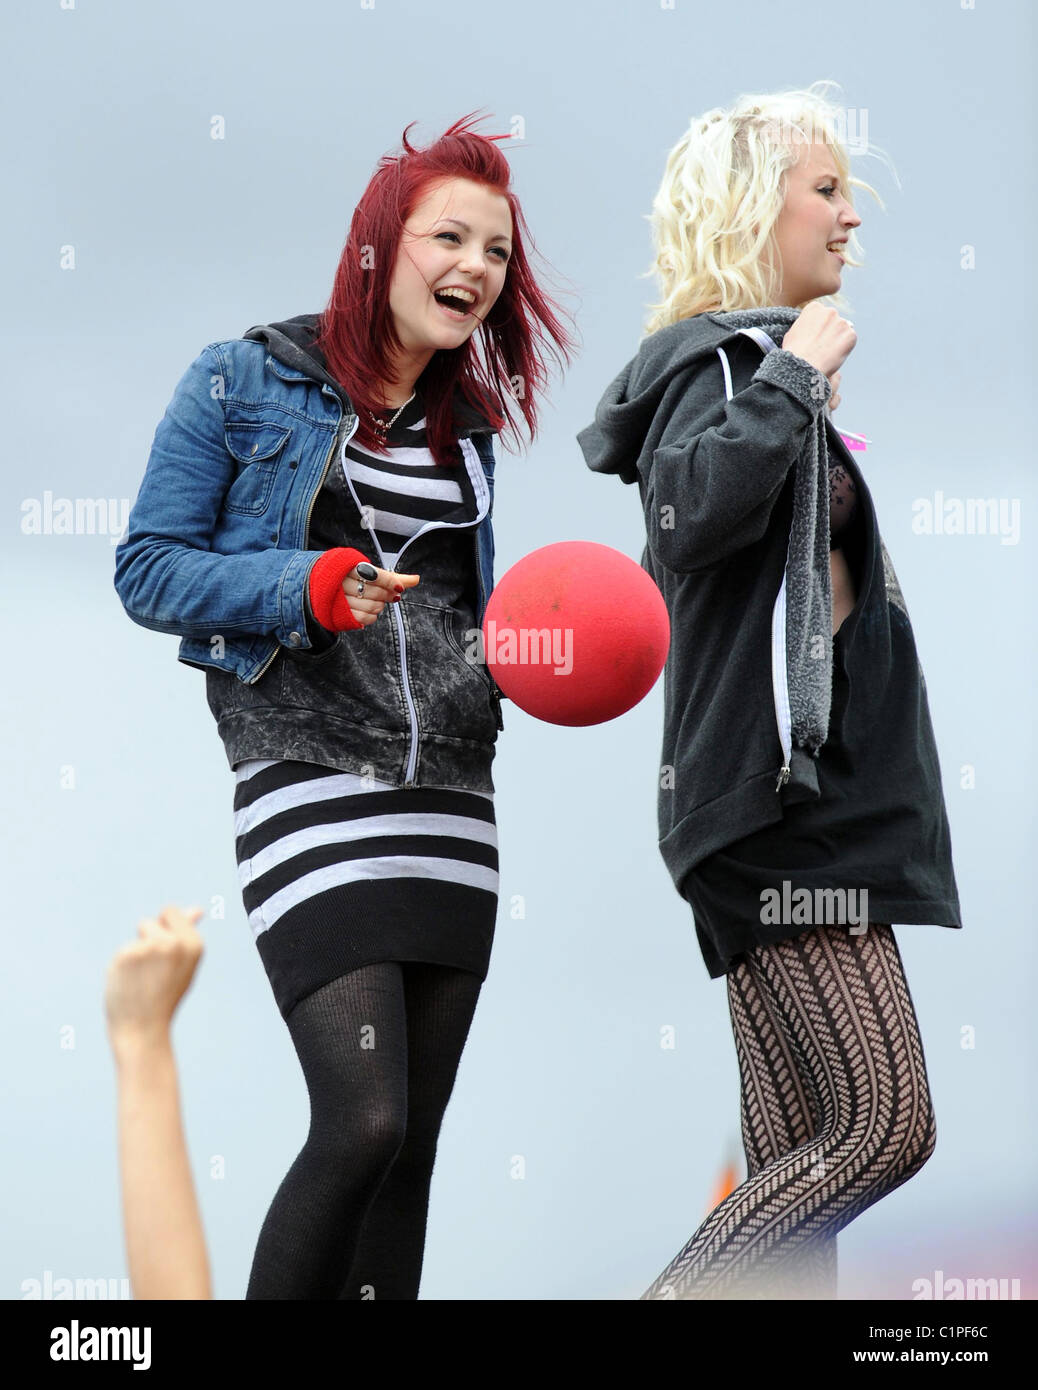 Megan Prescott and Lily Loveless from 'Skins' On stage at T4 On The Beach Weston-Super-Mare, Somerset - - Stock Image